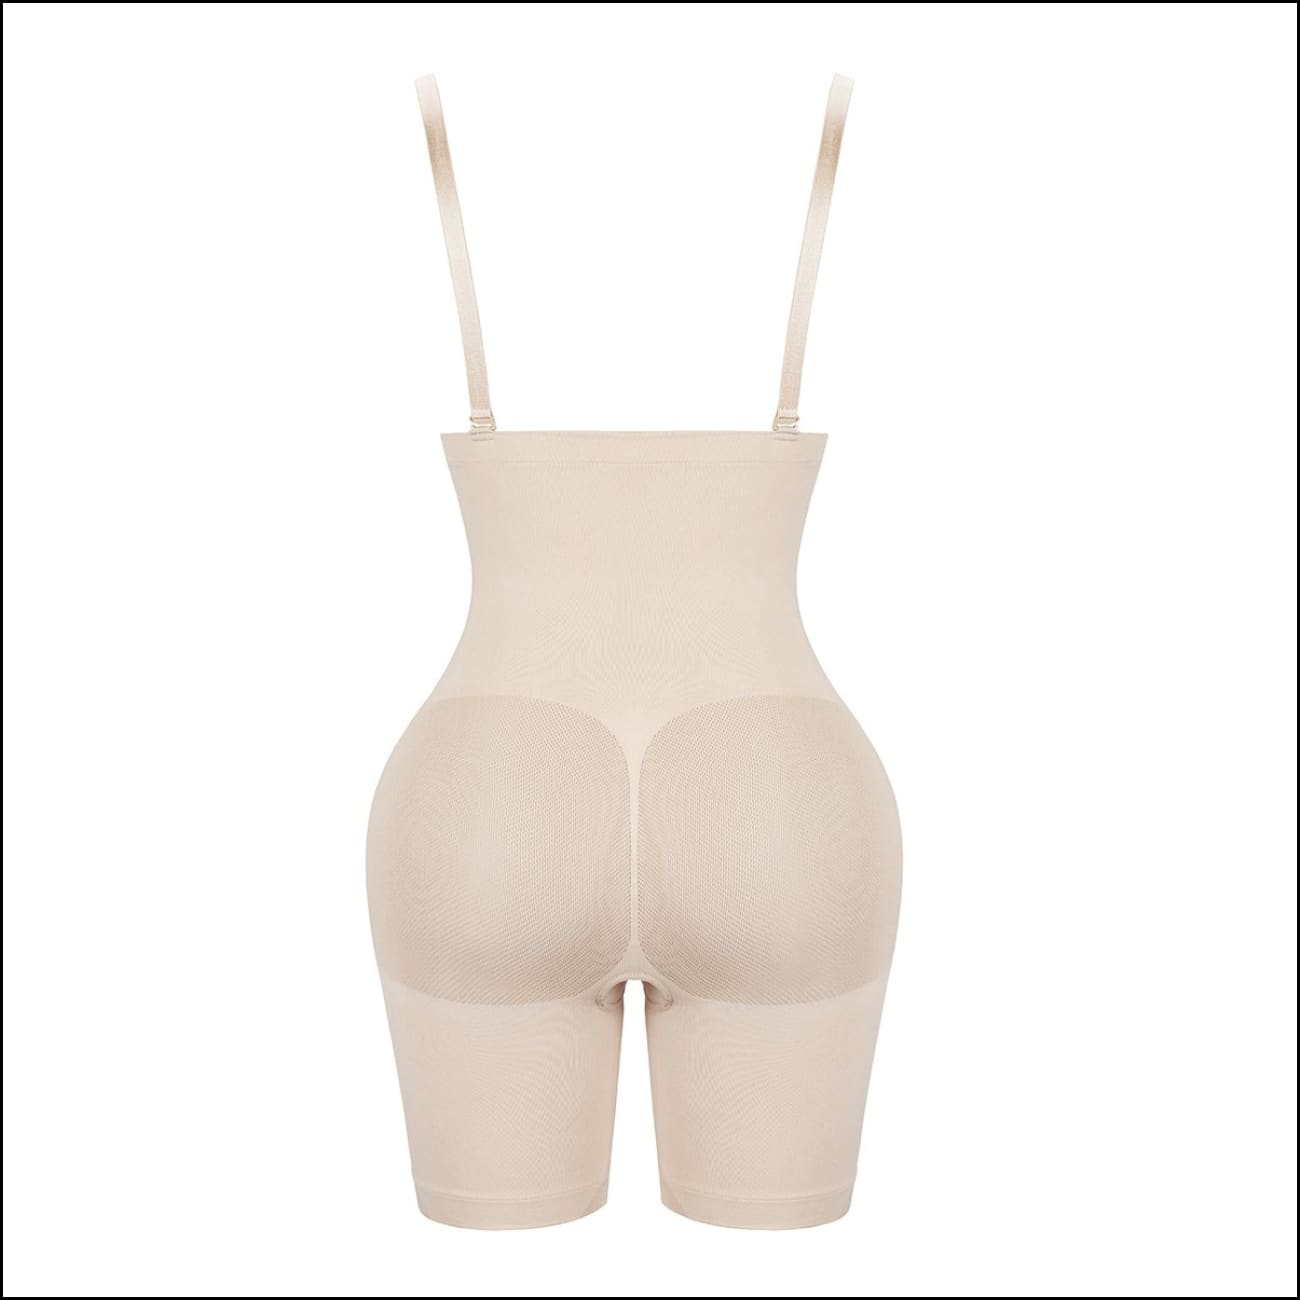 The perfect silhouette - shapewear